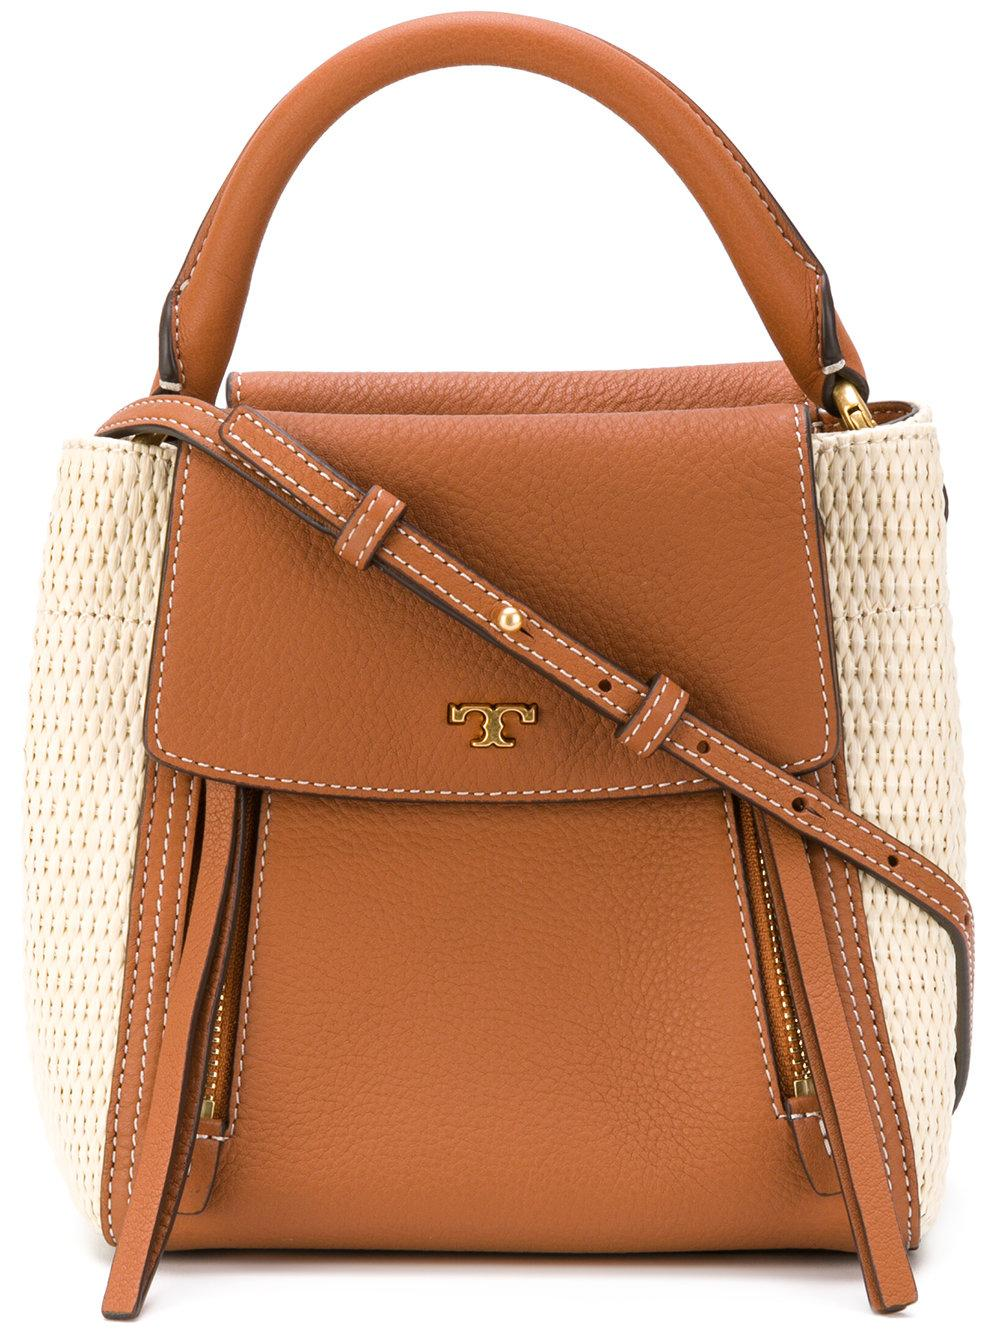 Tory Burch Half-moon Cross-body Bag